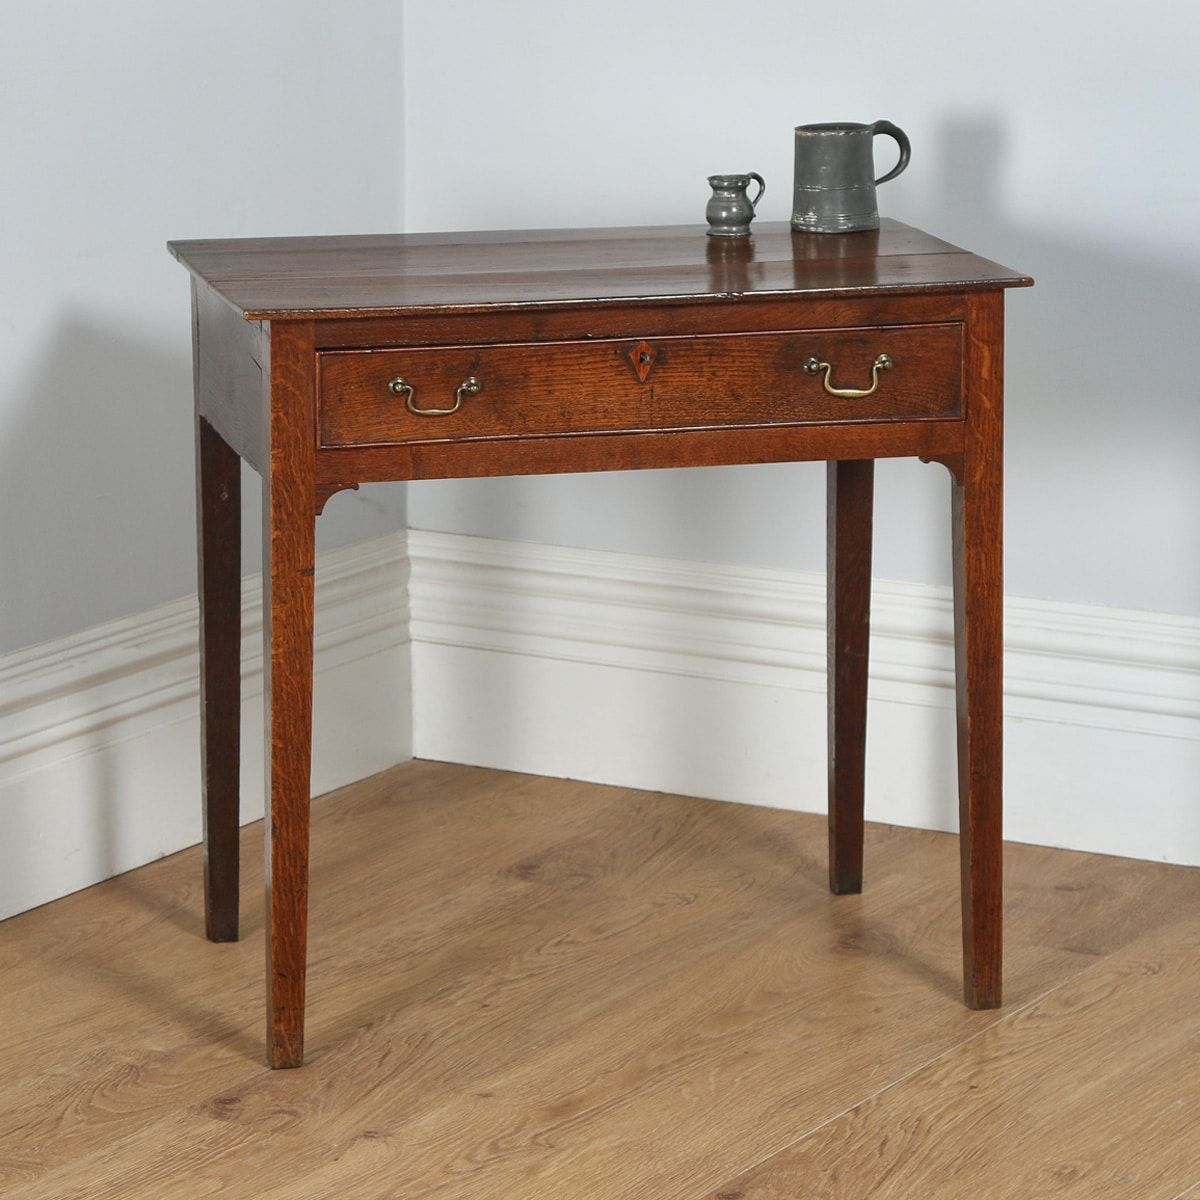 Antique English George III Country Oak Side / Hall Table (Circa 1800)